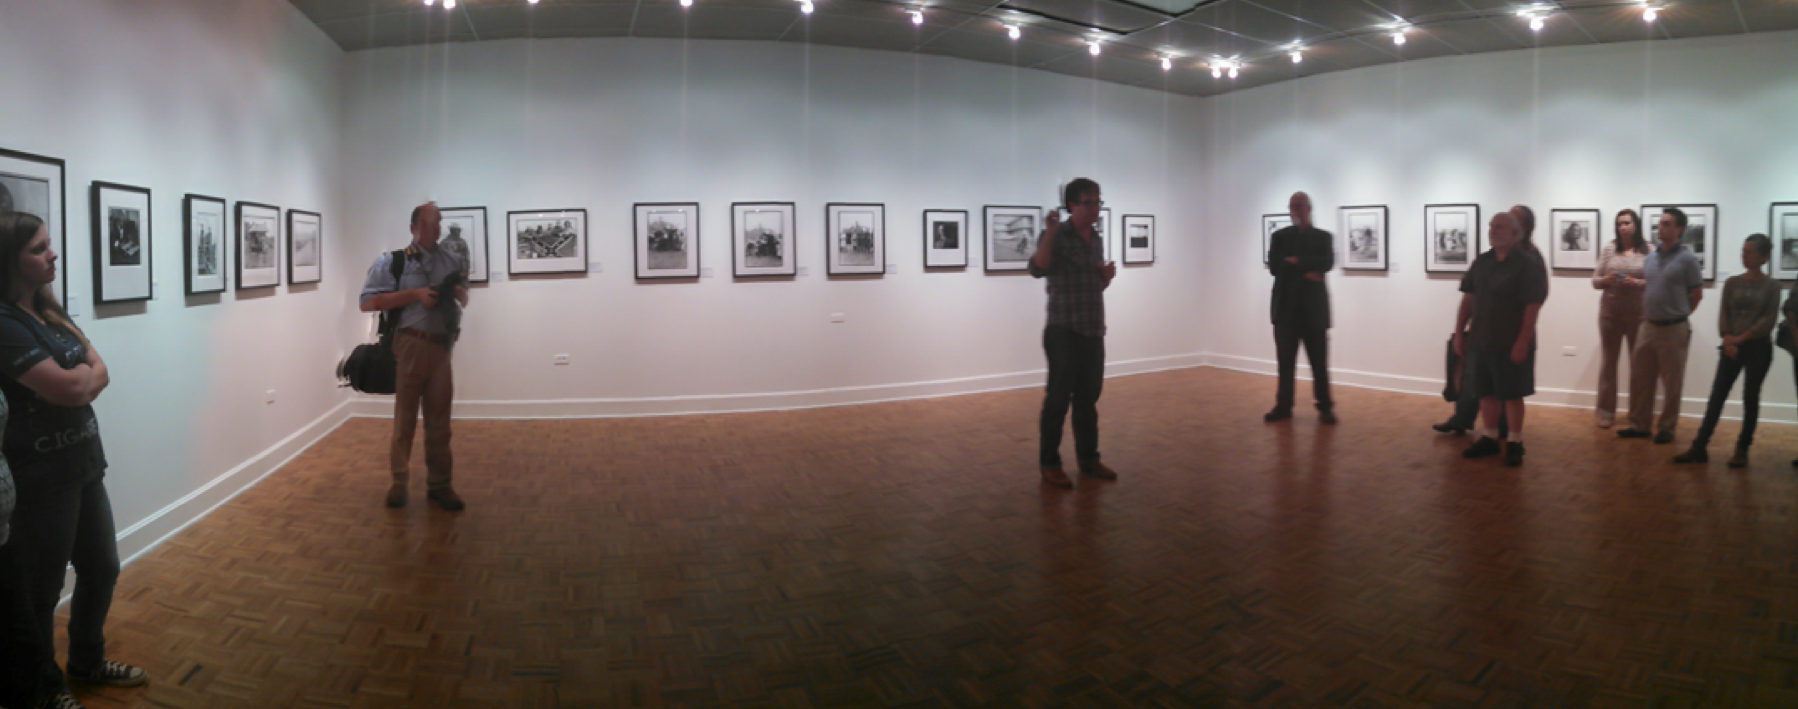 Gallery showcases civil rights photos